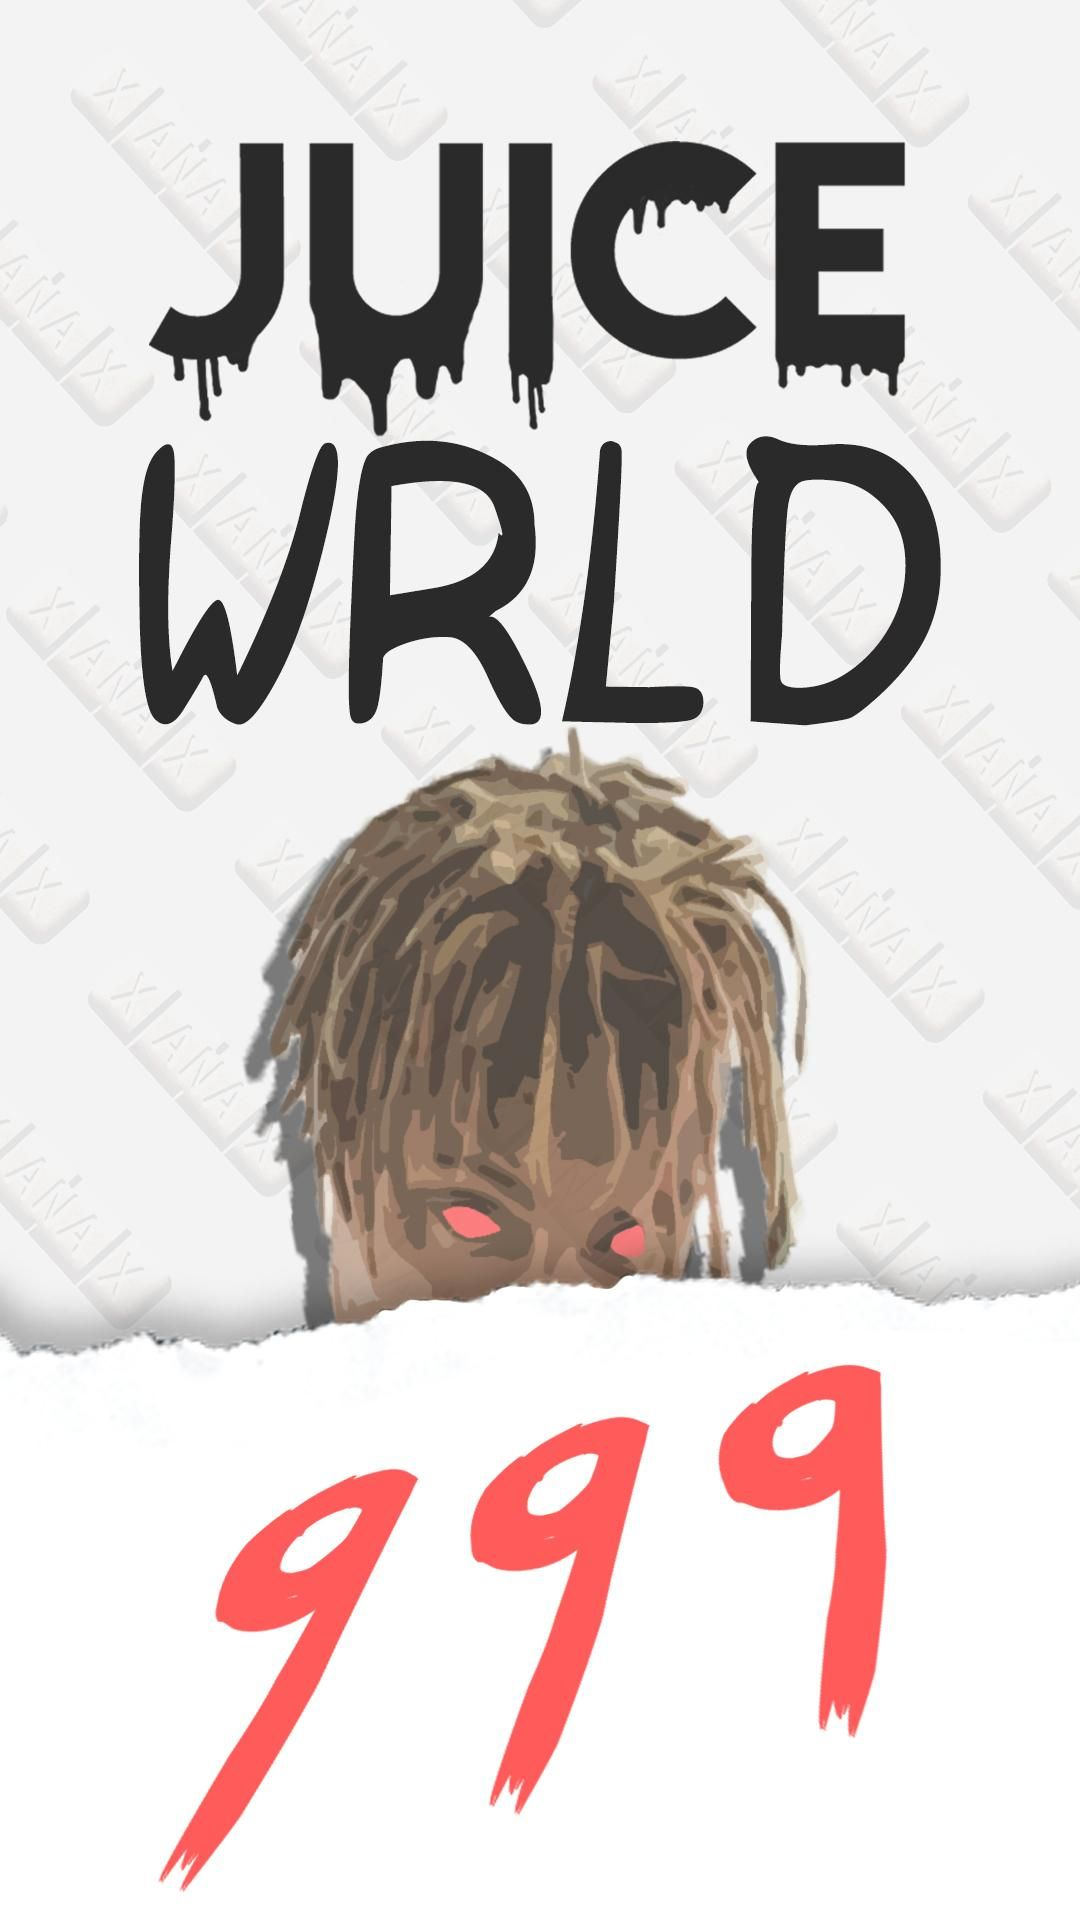 Juice WRLD YouTube Tupac wallpaper, Rap artists